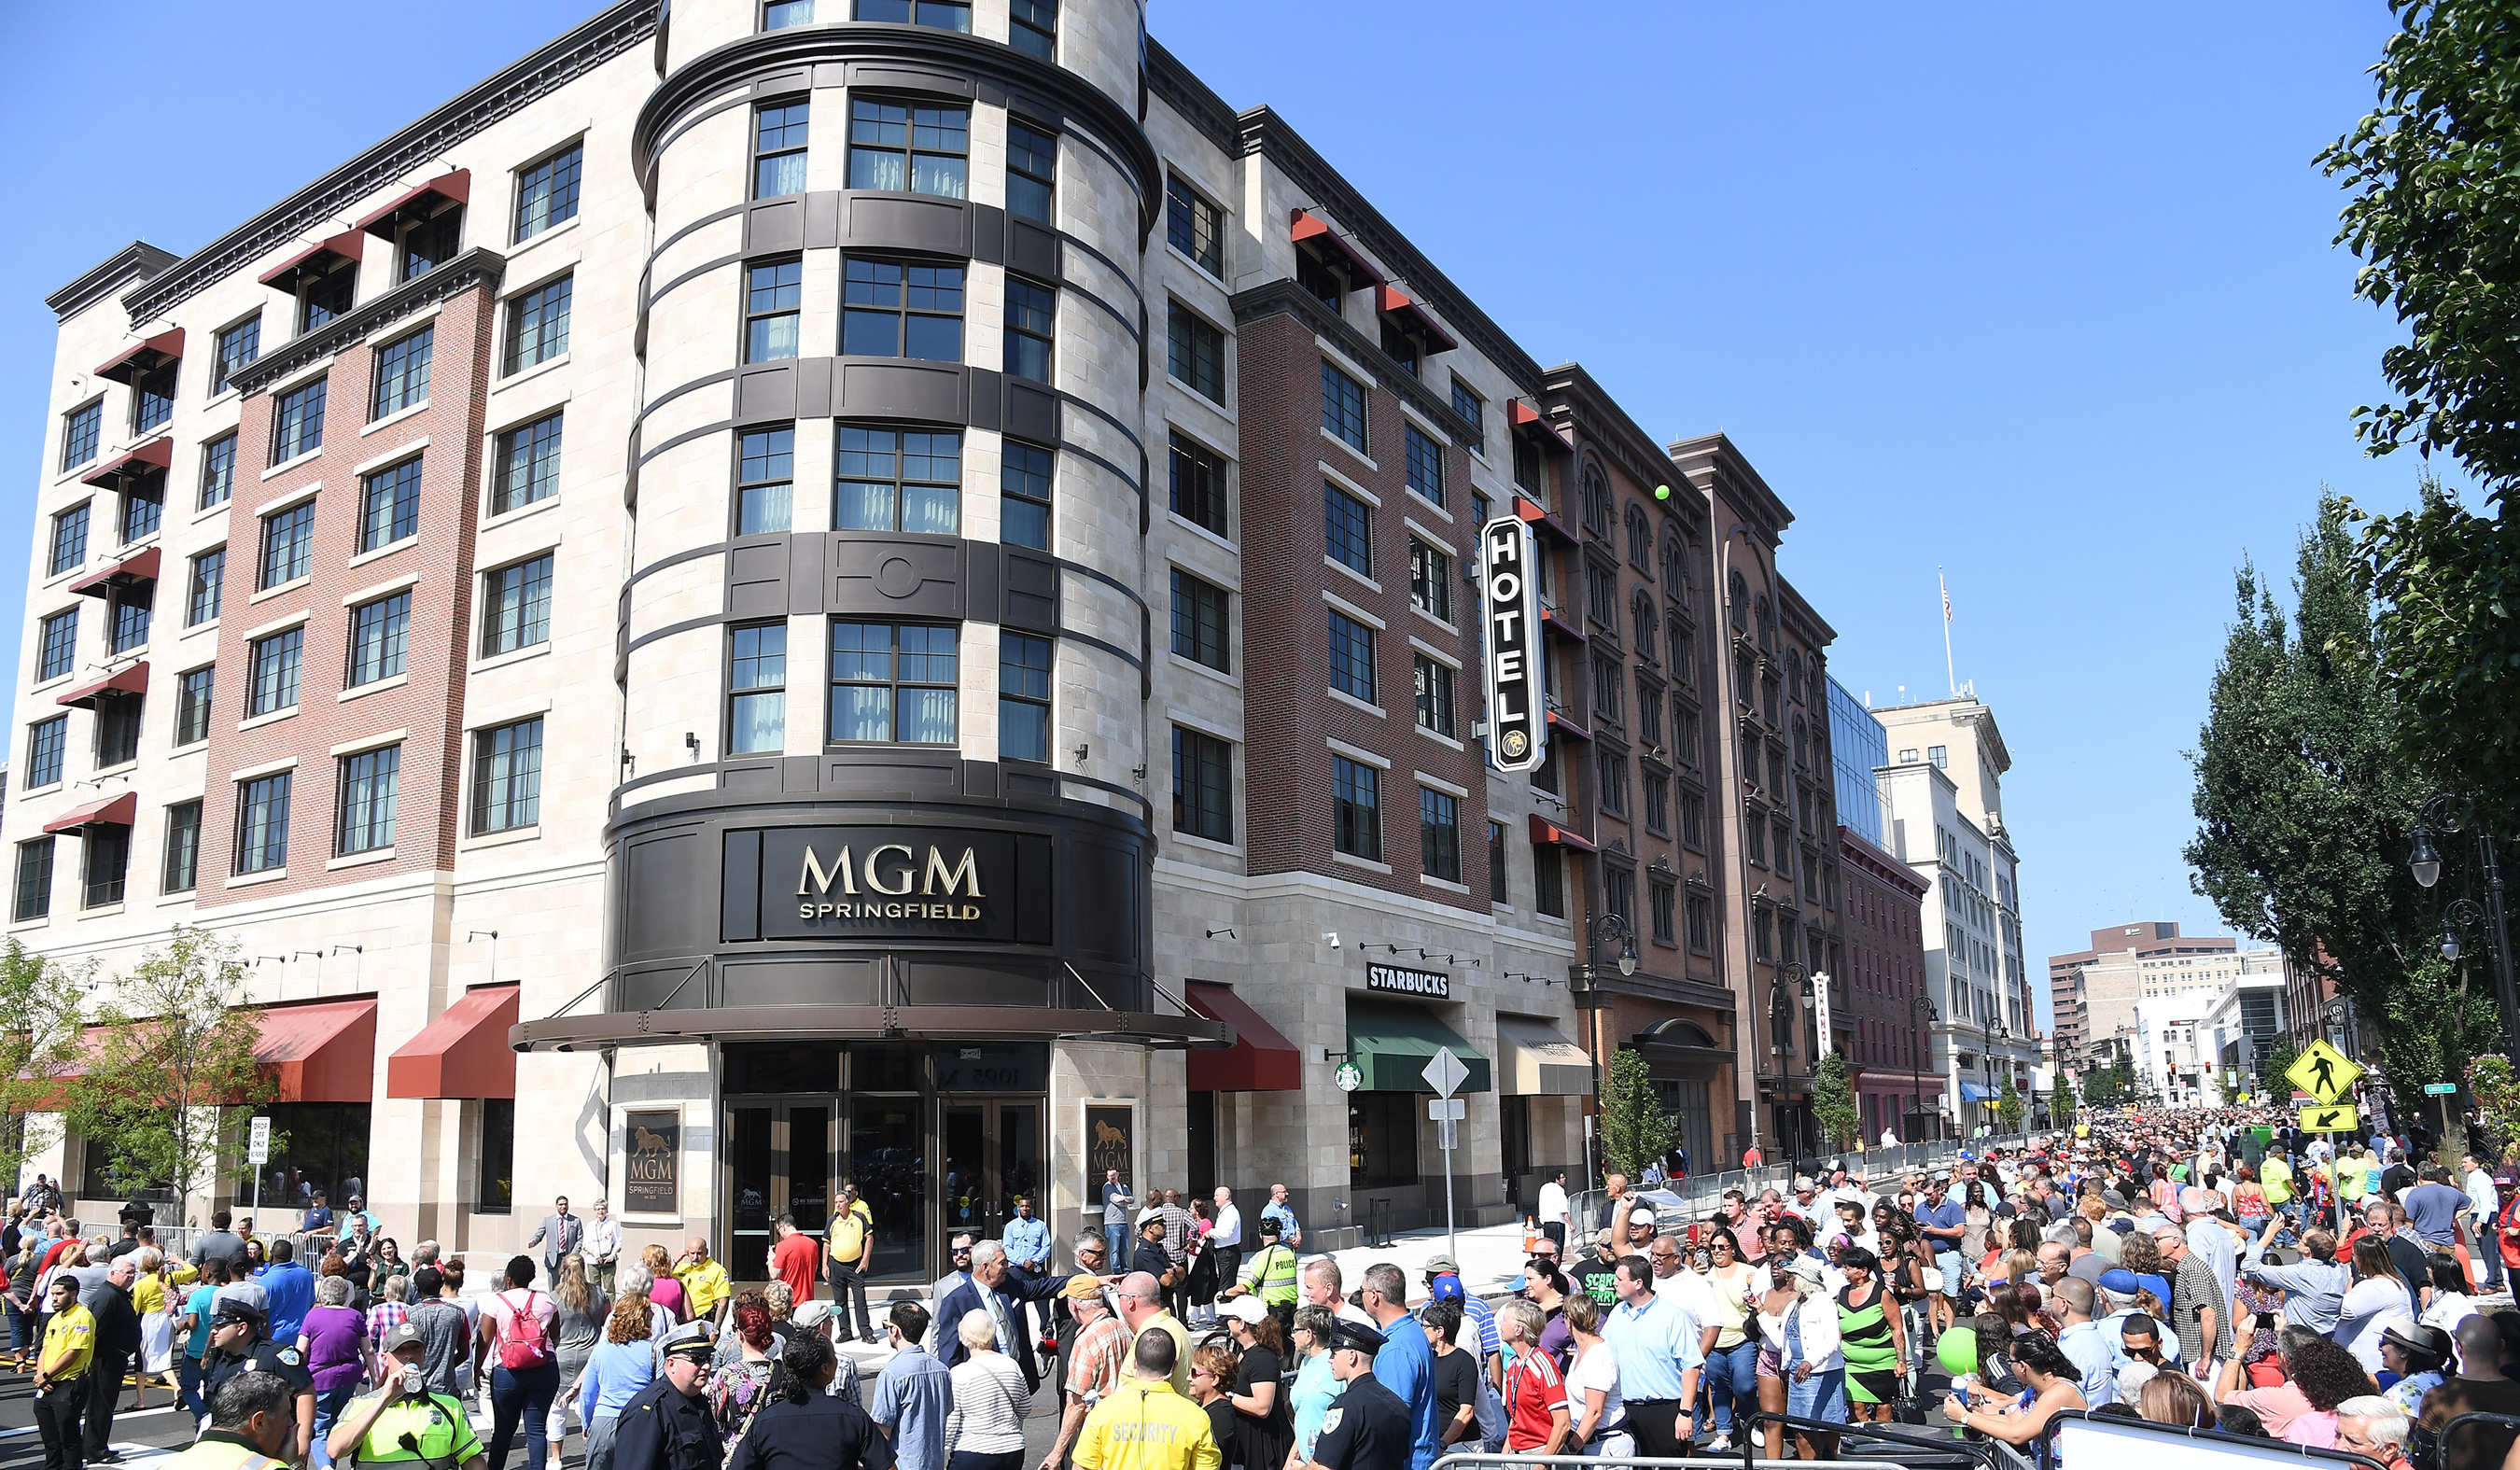 On August 24, thousands of guests filed into MGM Springfield for its grand opening day.